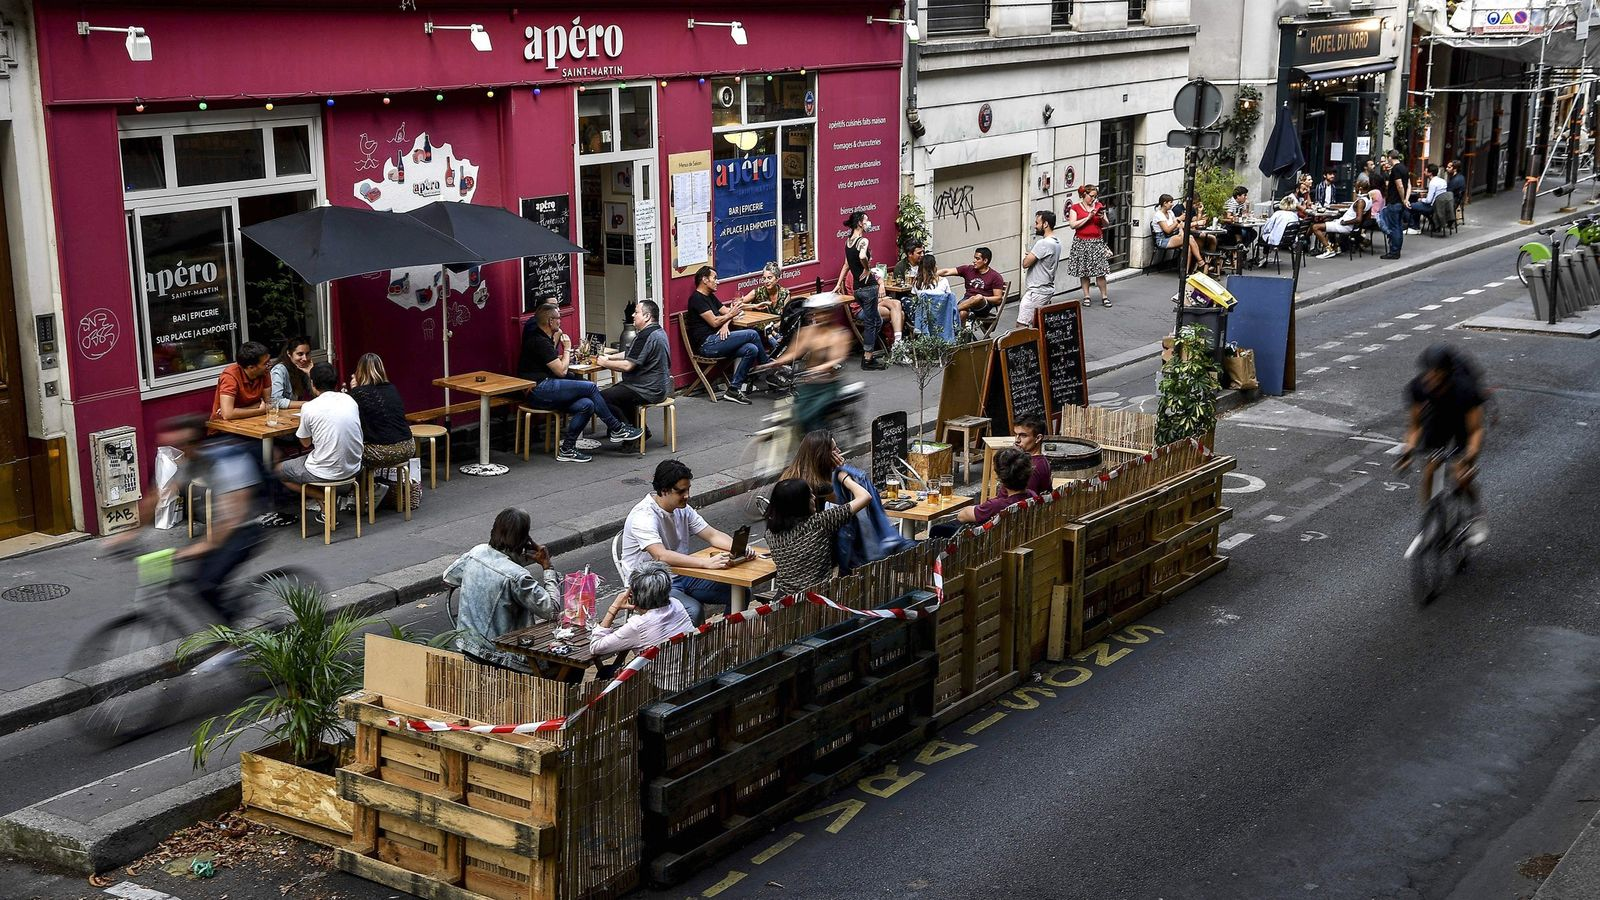 In Paris on July 23, 2020, café patrons sip drinks on an extended terrace made of ...